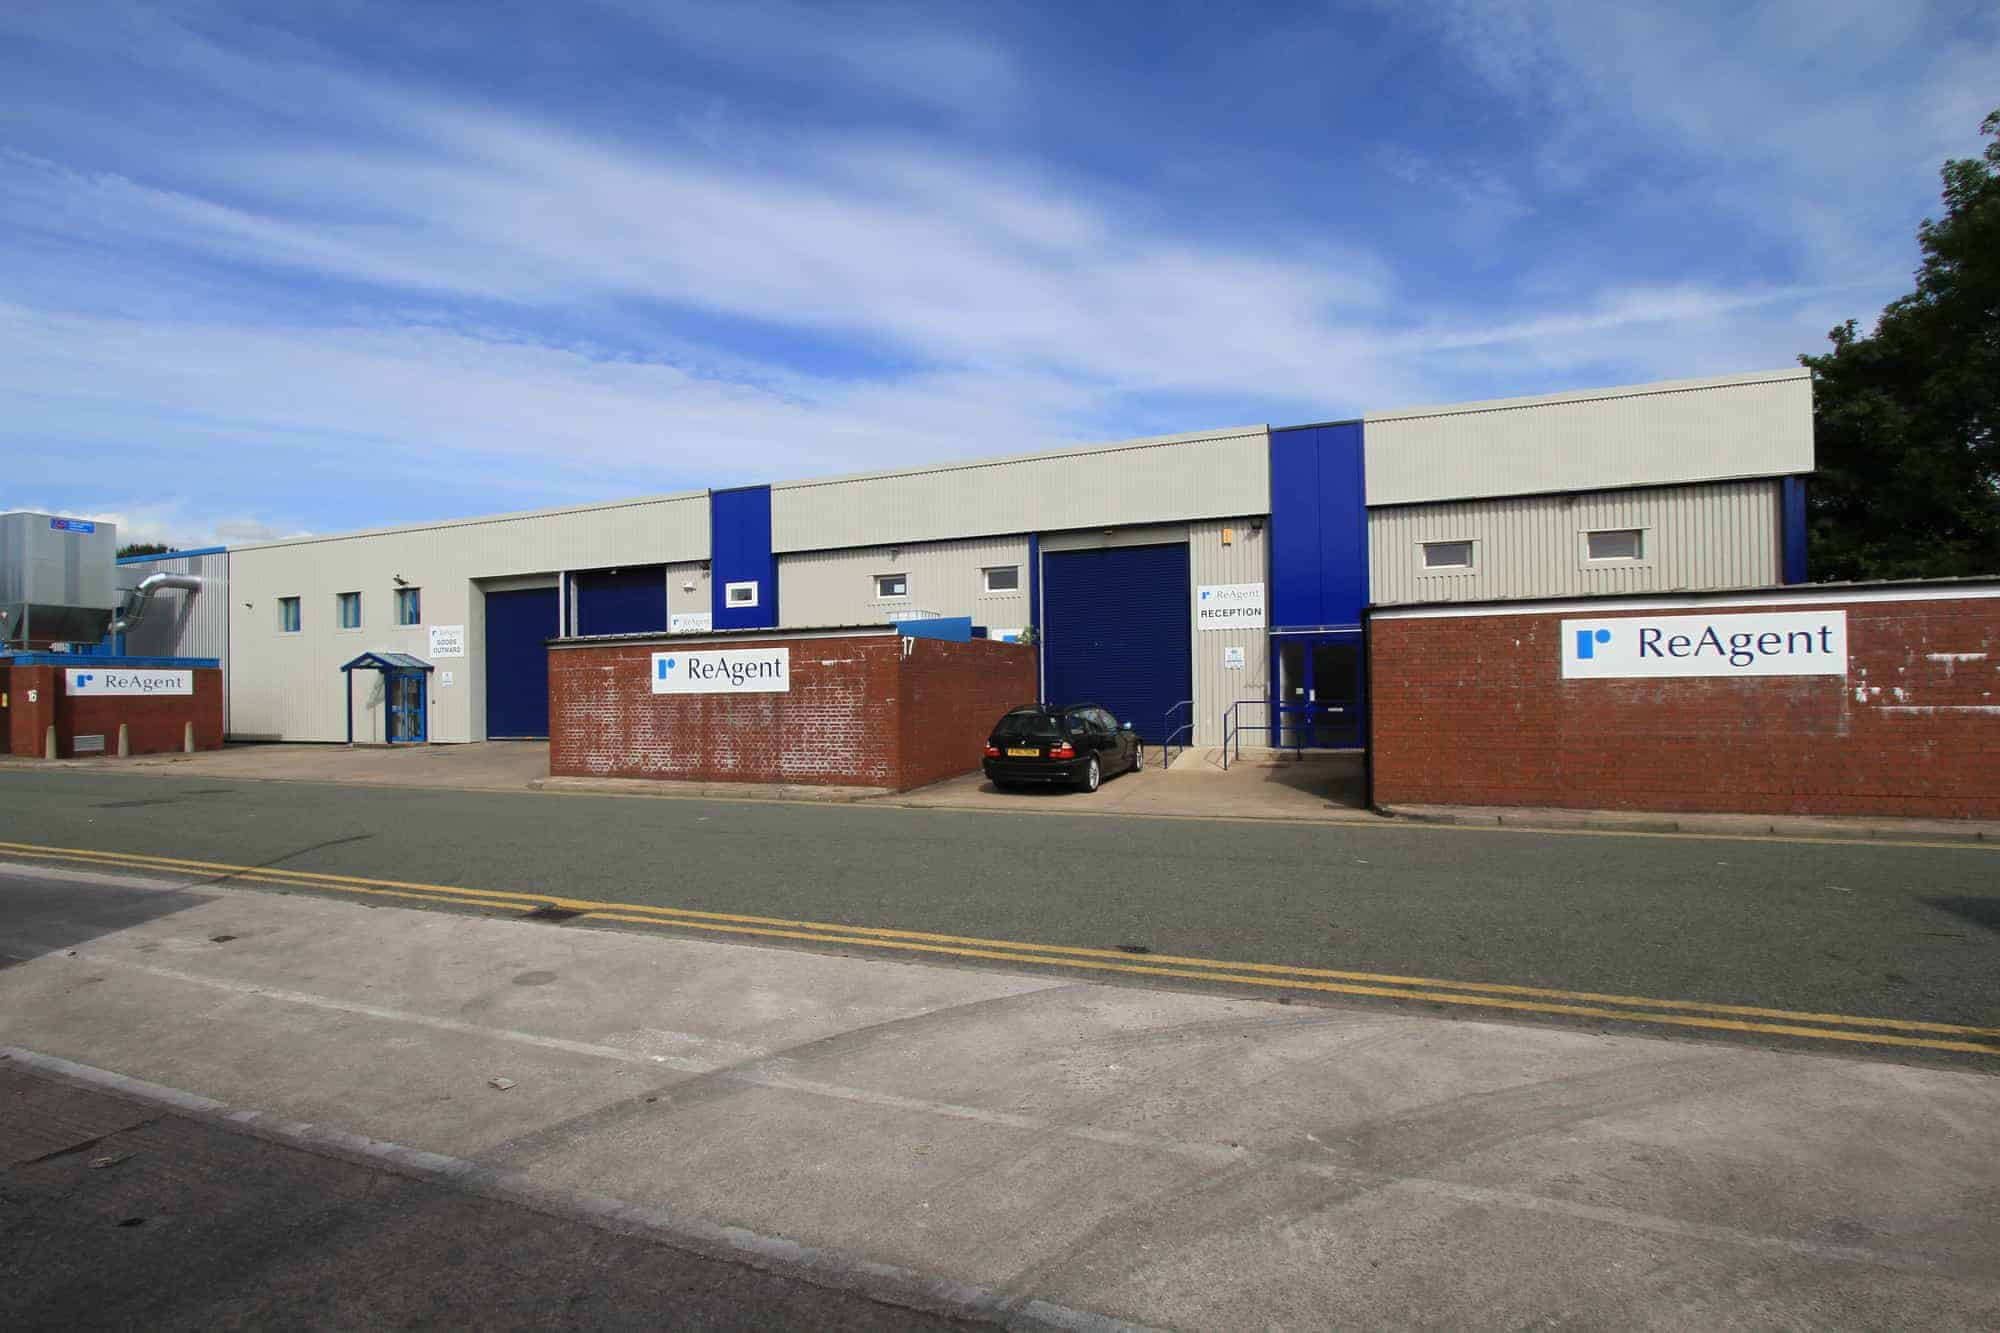 A long, outdoor shot of the ReAgent UK factory